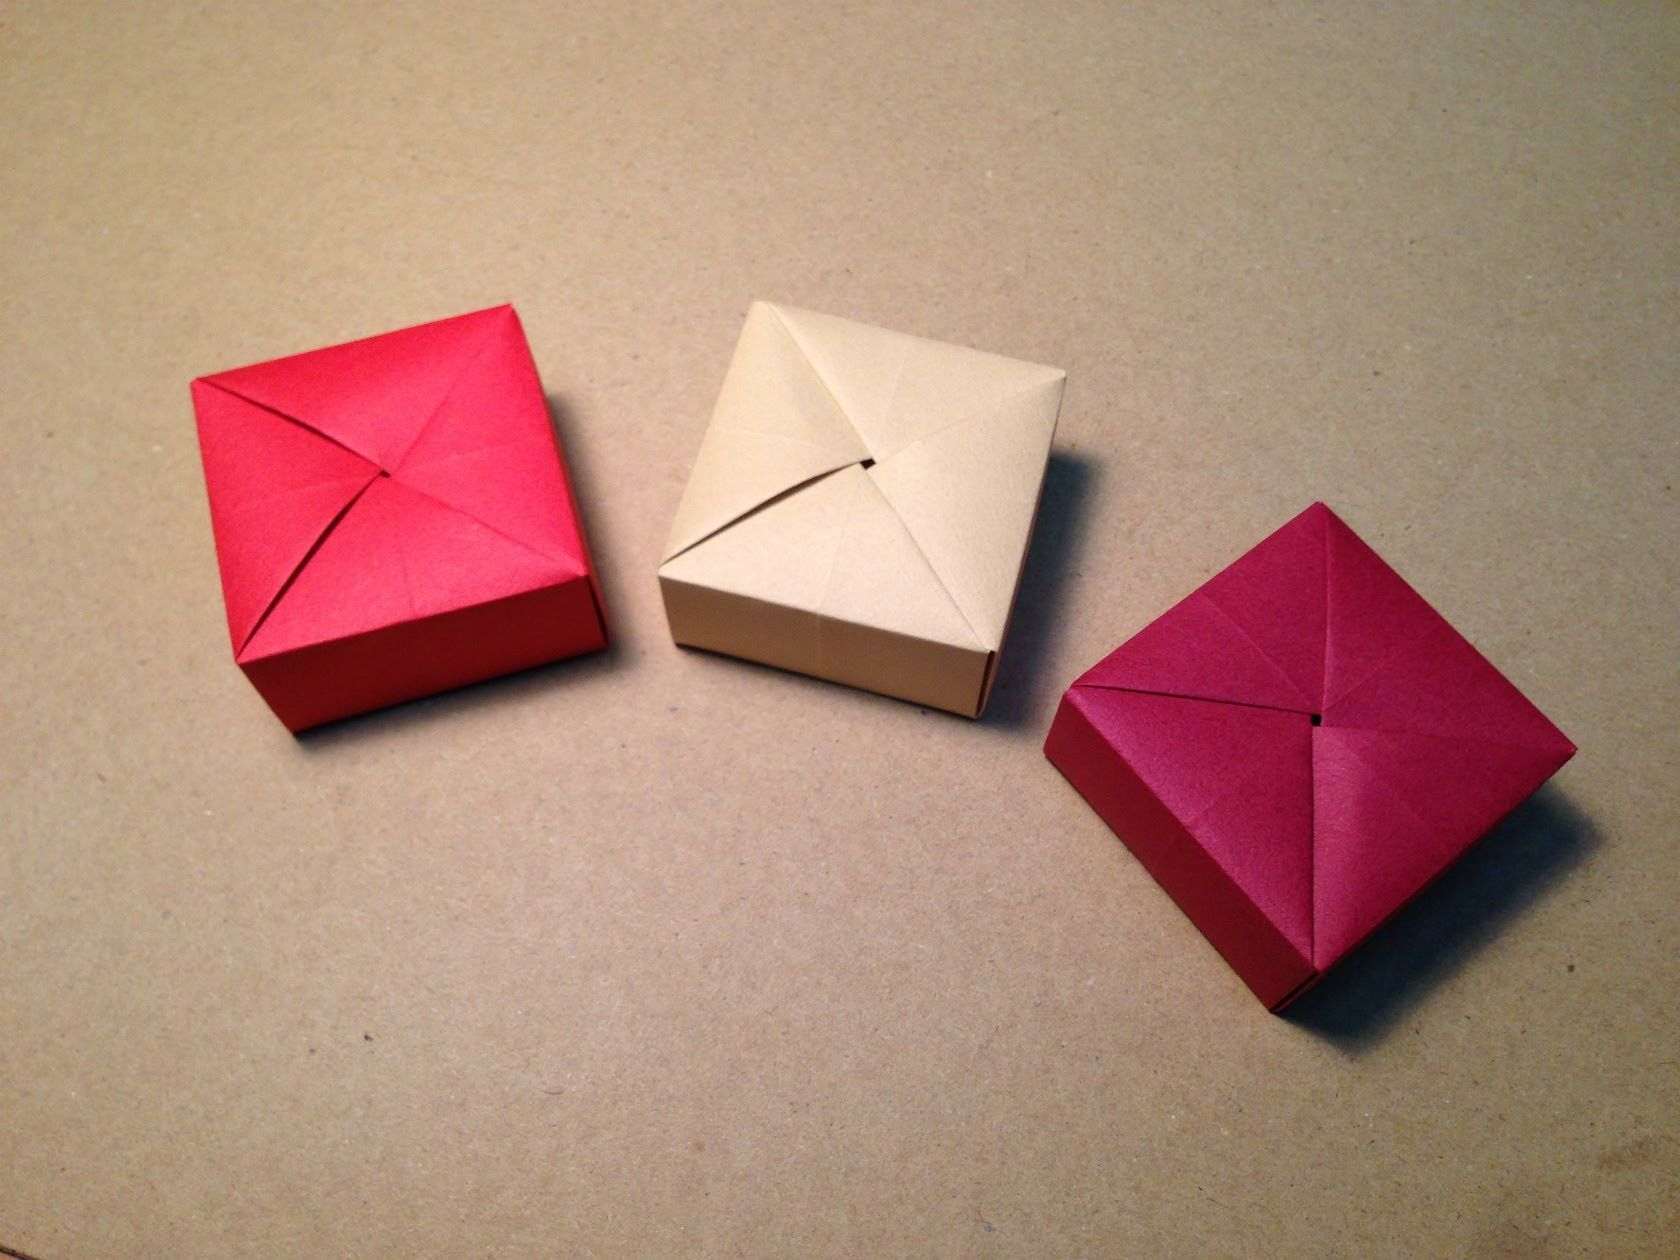 How To Make An Origami Gift Box With One Sheet Of Paper Difficulty Level My Paper 15cm 15cm Origami Paper Origami Gifts Origami Gift Box Origami Box Easy